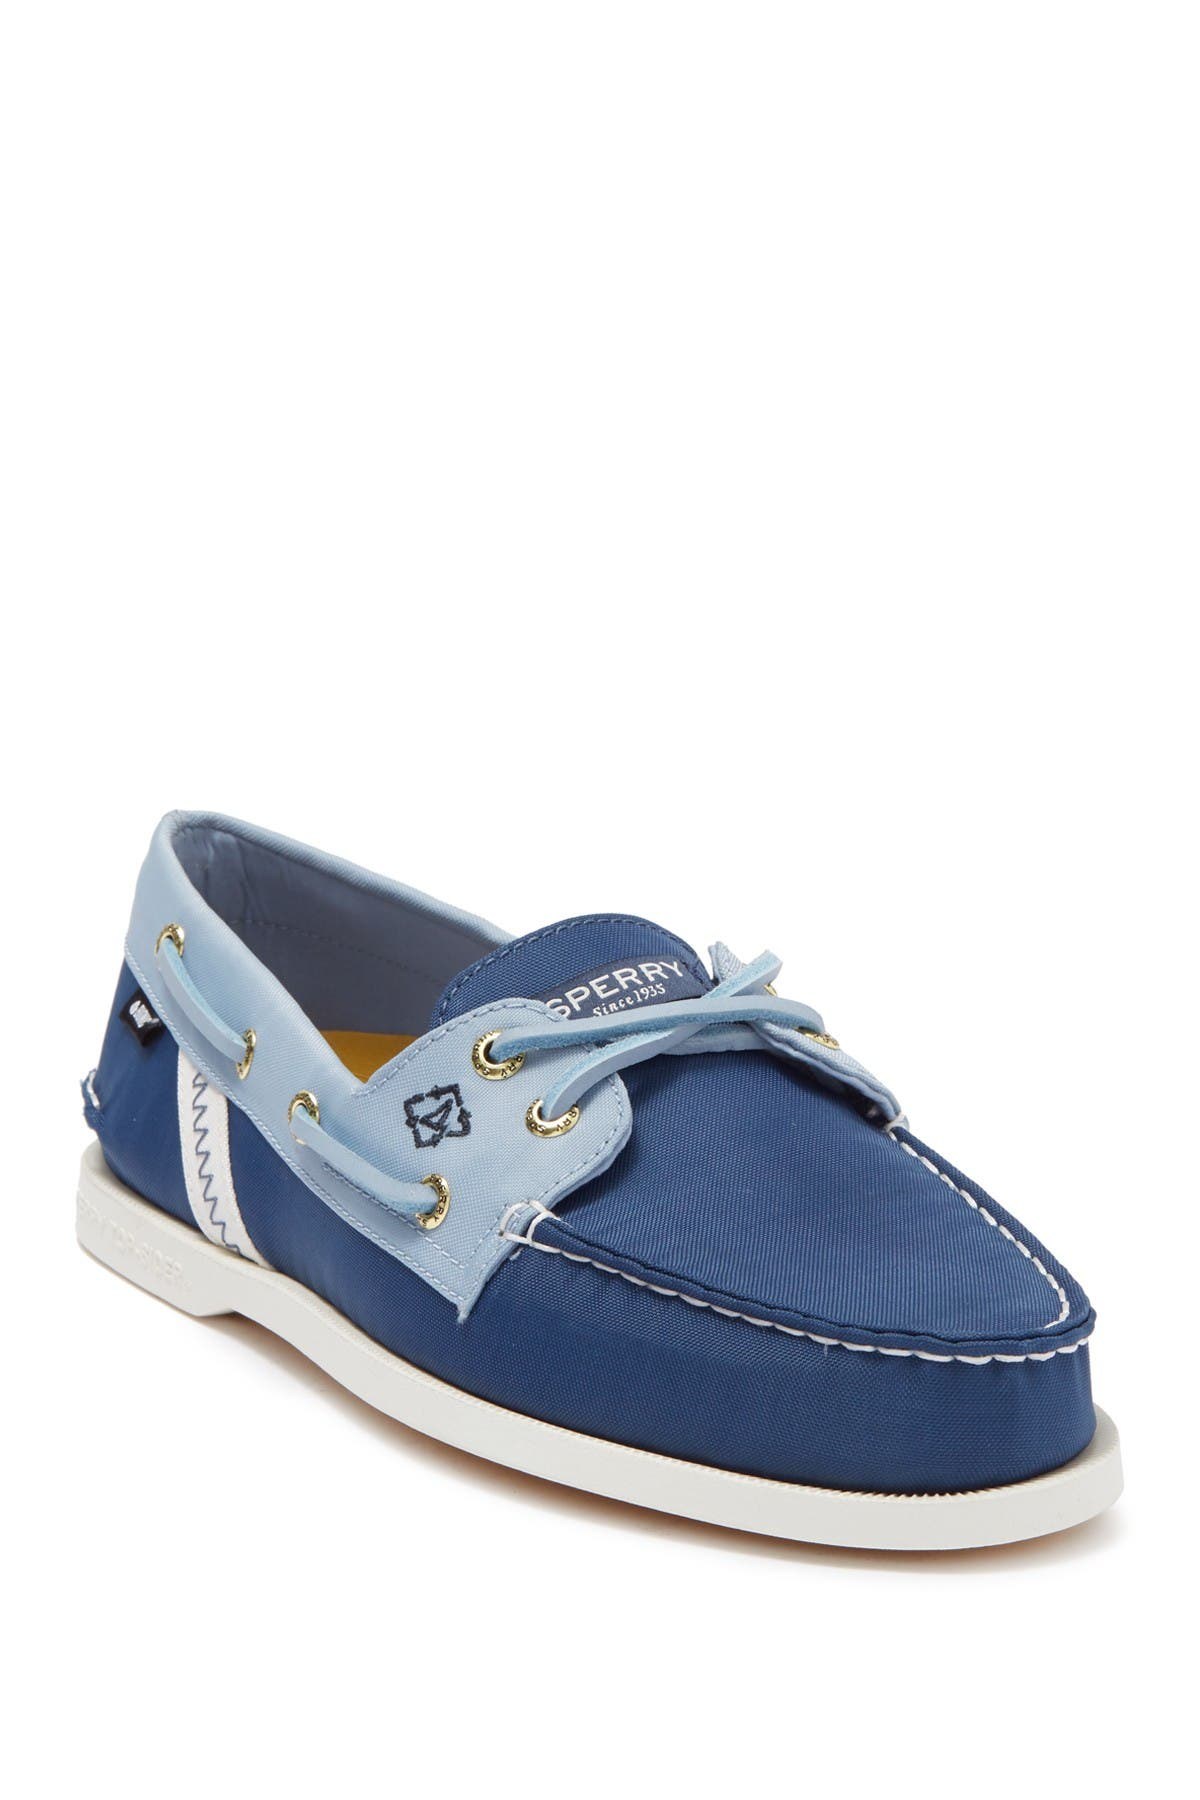 Image of Sperry Authentic Original 2-Eye Bionic Boat Shoe